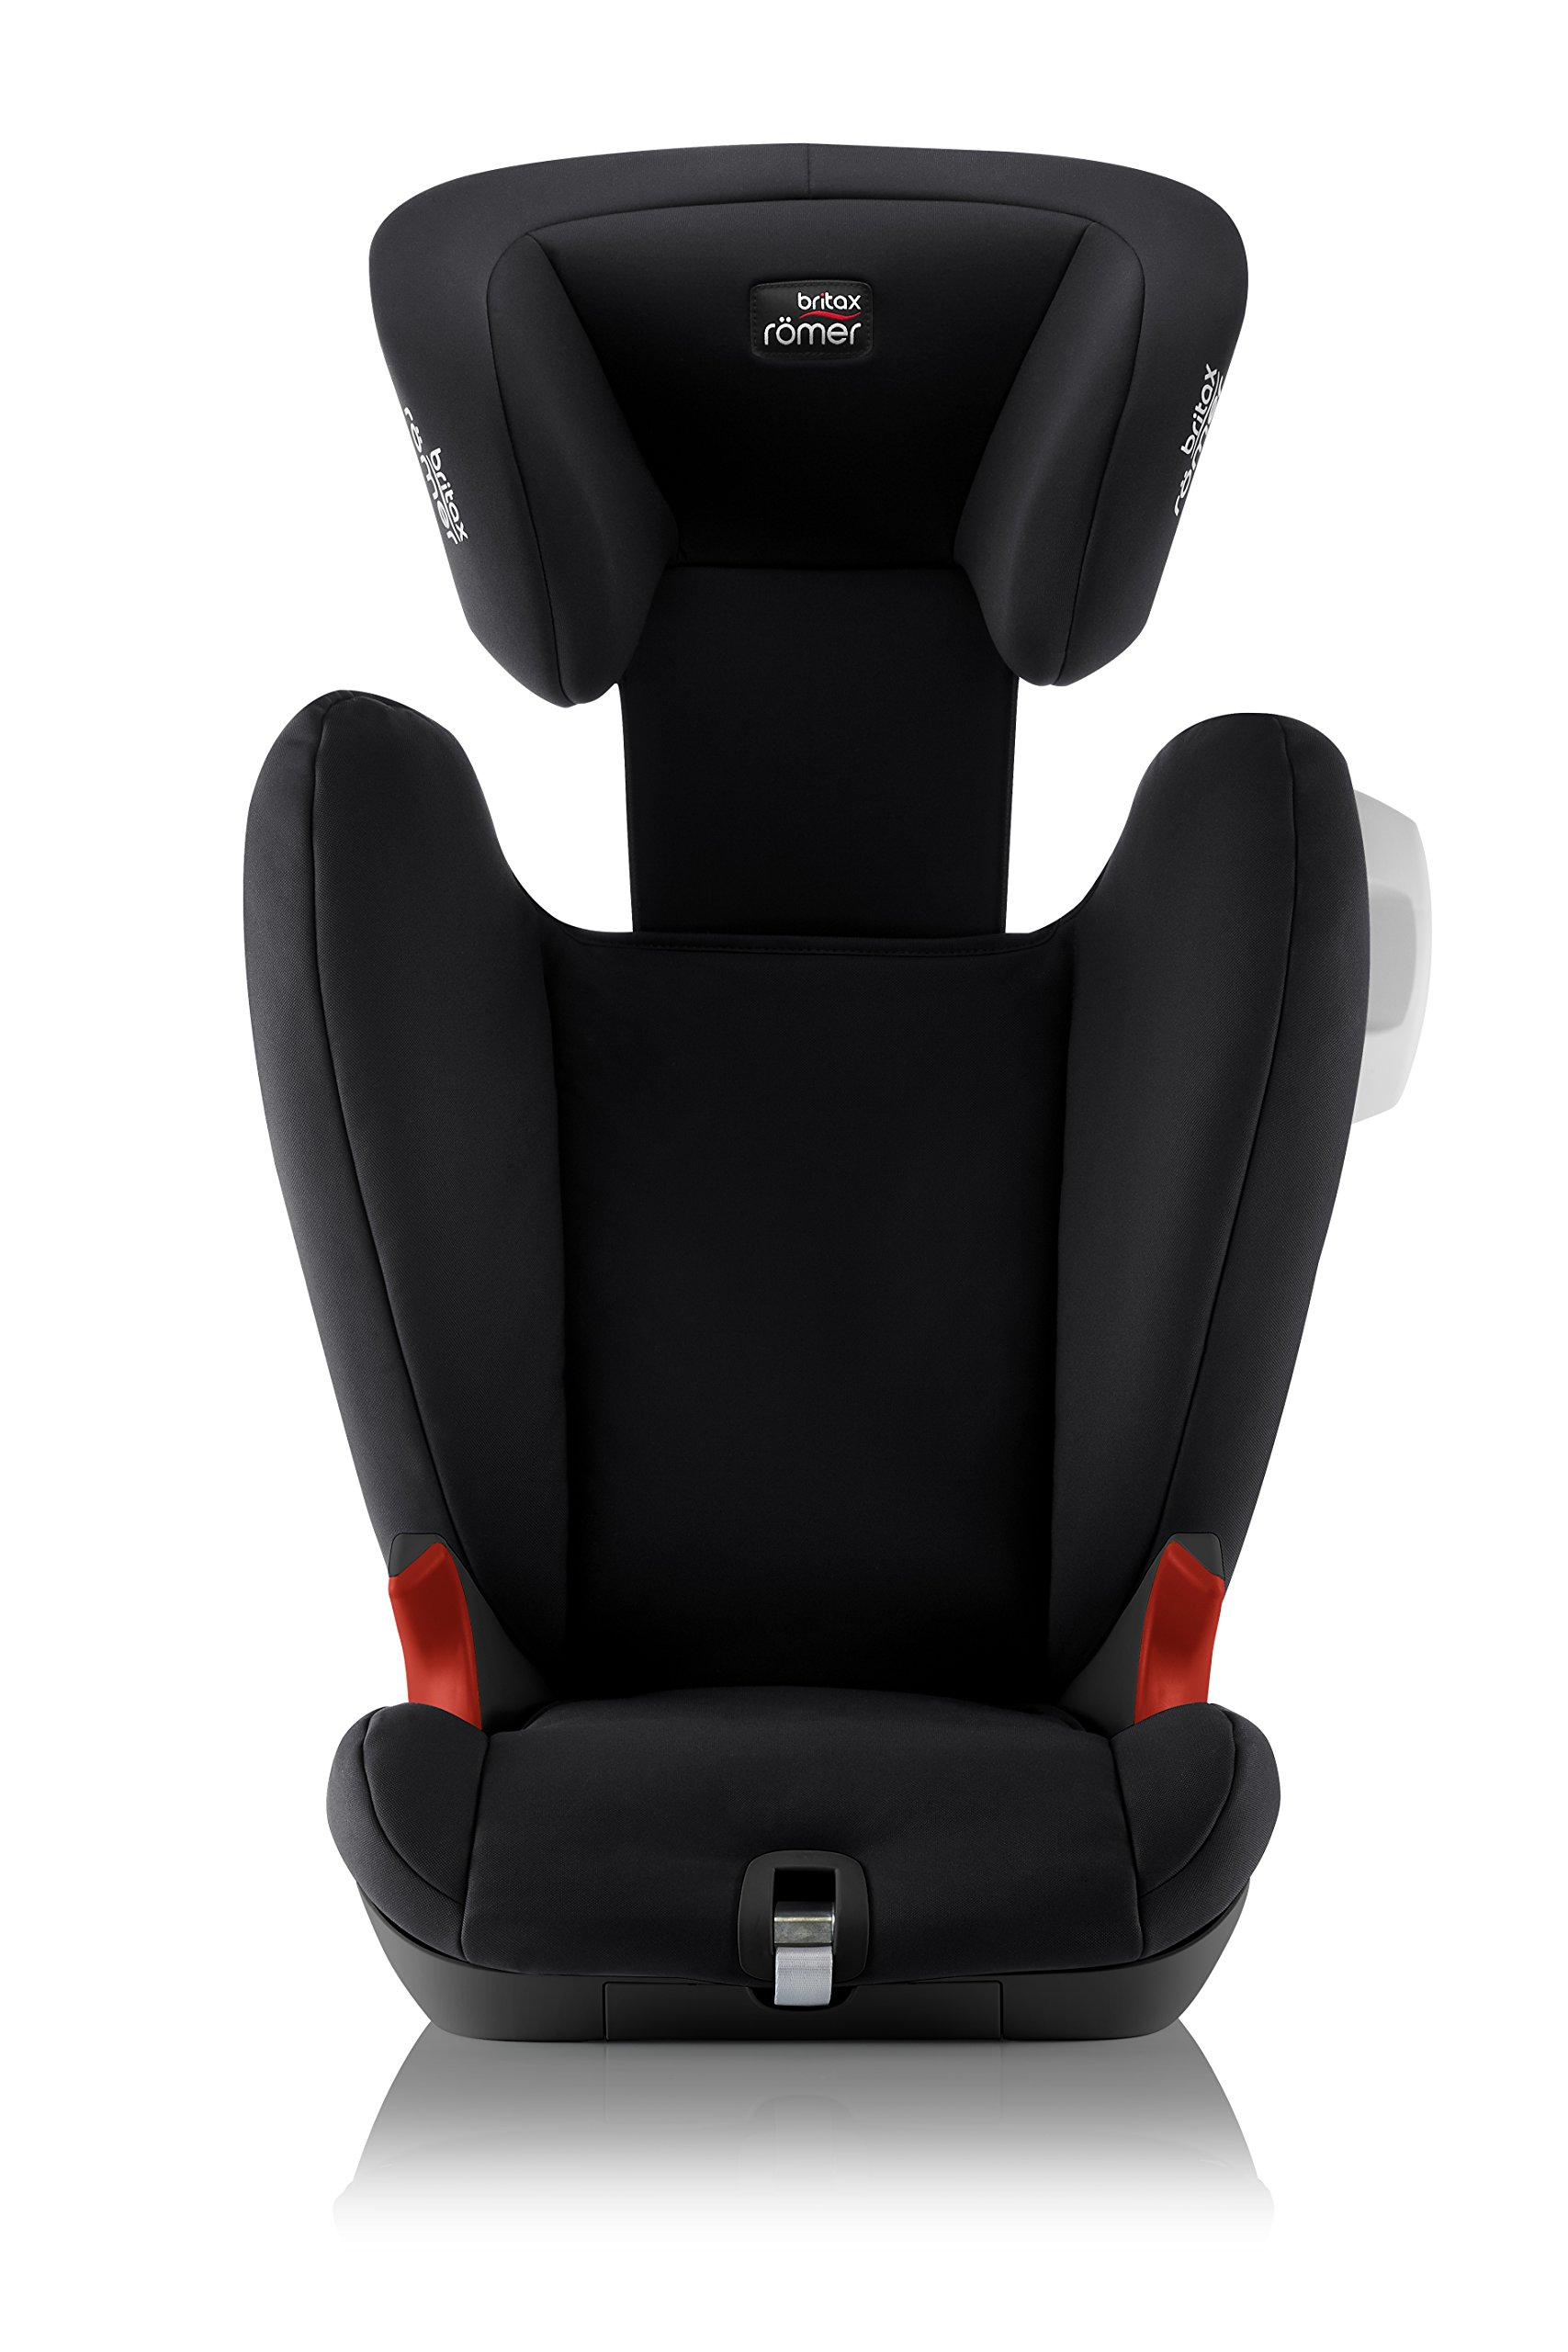 Britax Römer KIDFIX SL SICT BLACK SERIES Group 2-3 (15-36kg) Car Seat - Cosmos Black  Side impact protection - deep, softly padded side wings and sict technology, removable to use only on the side closest to the door Simple installation - soft-latch isofit system Misuse limiting design - intuitively positioned seat belt guides 6